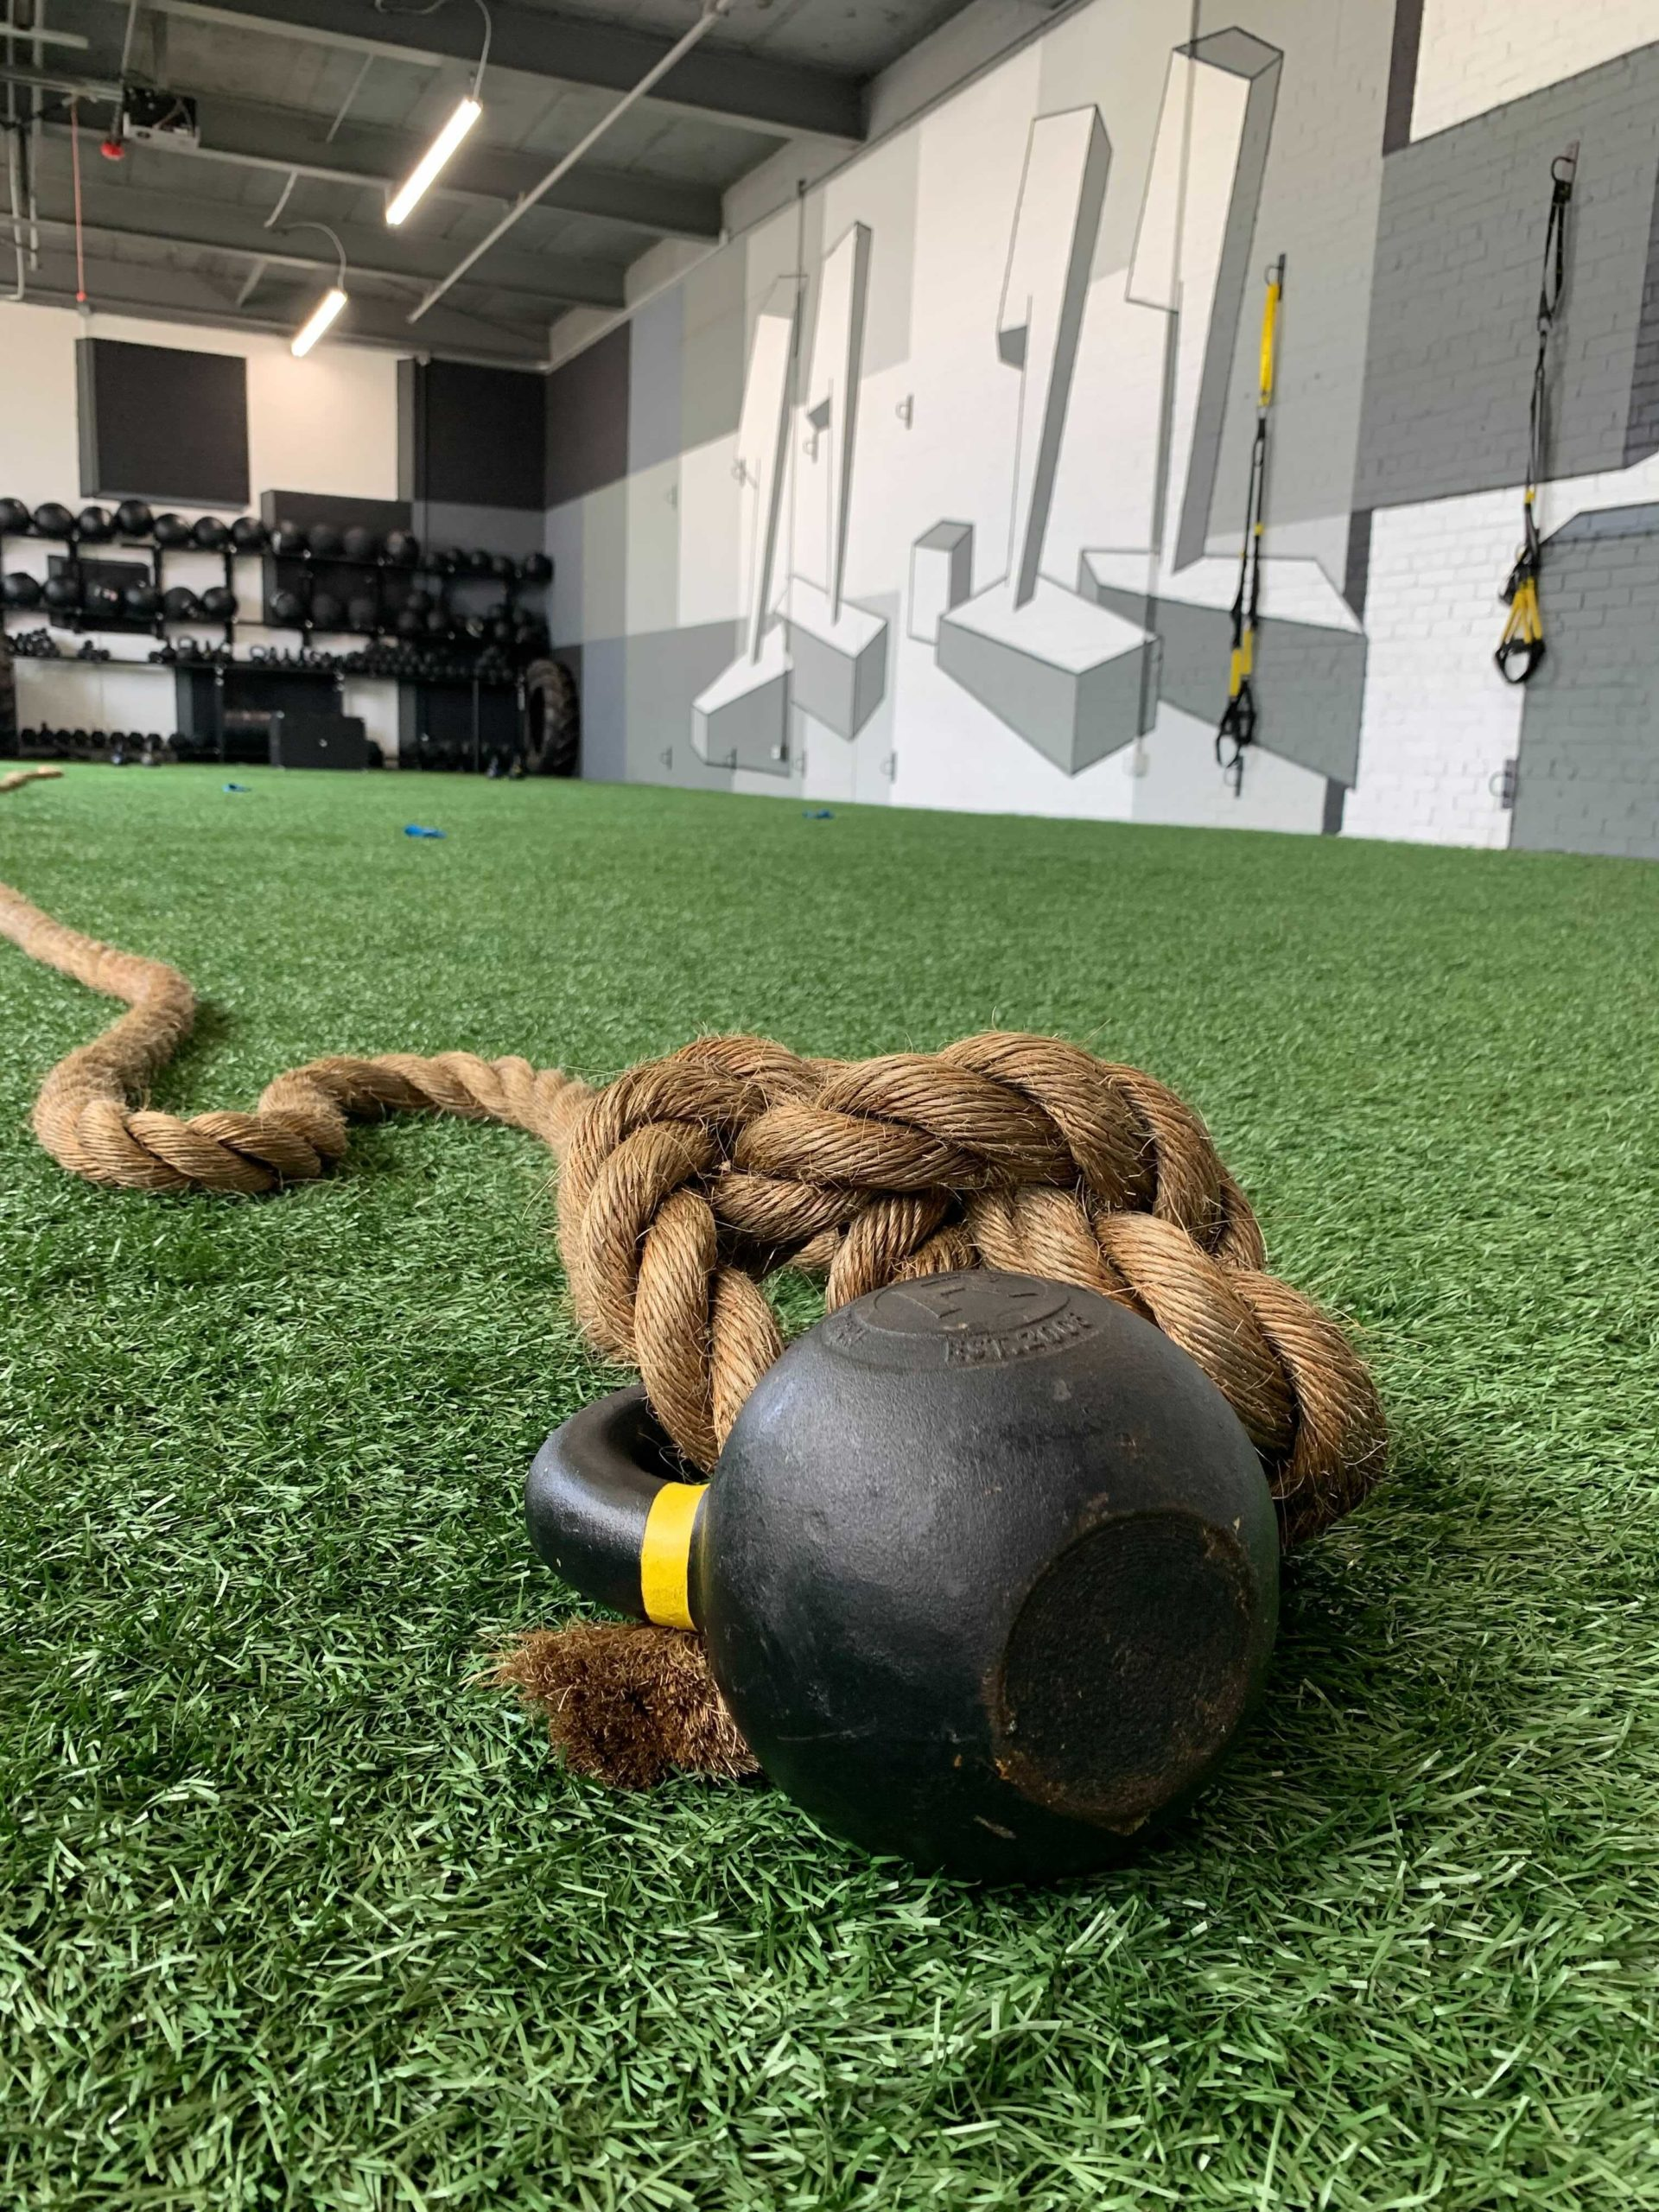 Rope pull exercise at 11.11 Training | Photo by the GVLtoday team